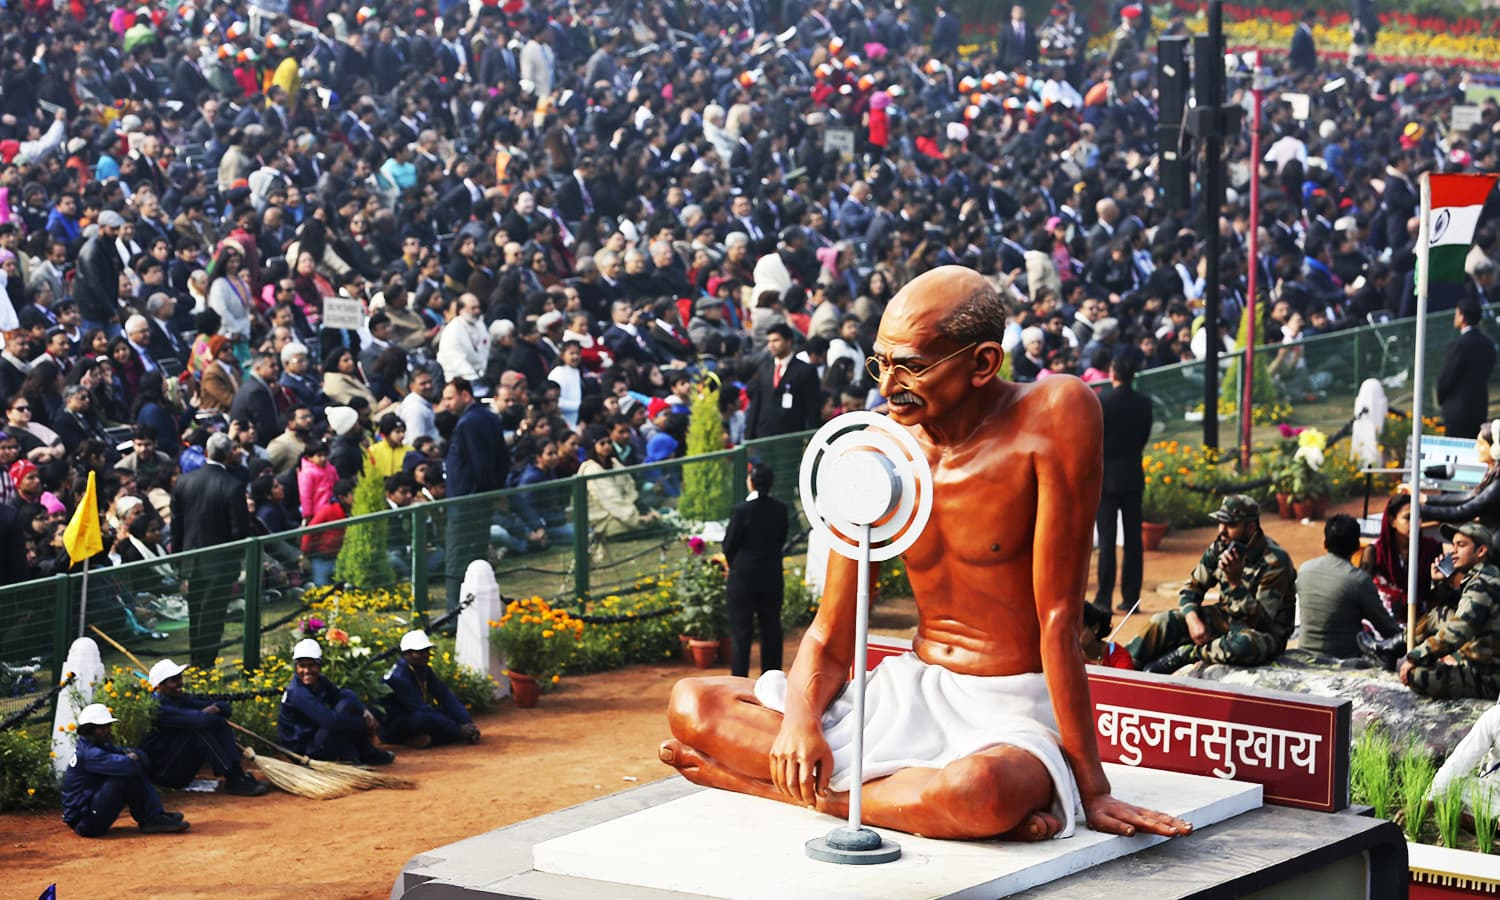 A tableaux featuring Mahatma Gandhi moves through Rajpath, the ceremonial boulevard, during Republic Day parade in New Delhi.—AP